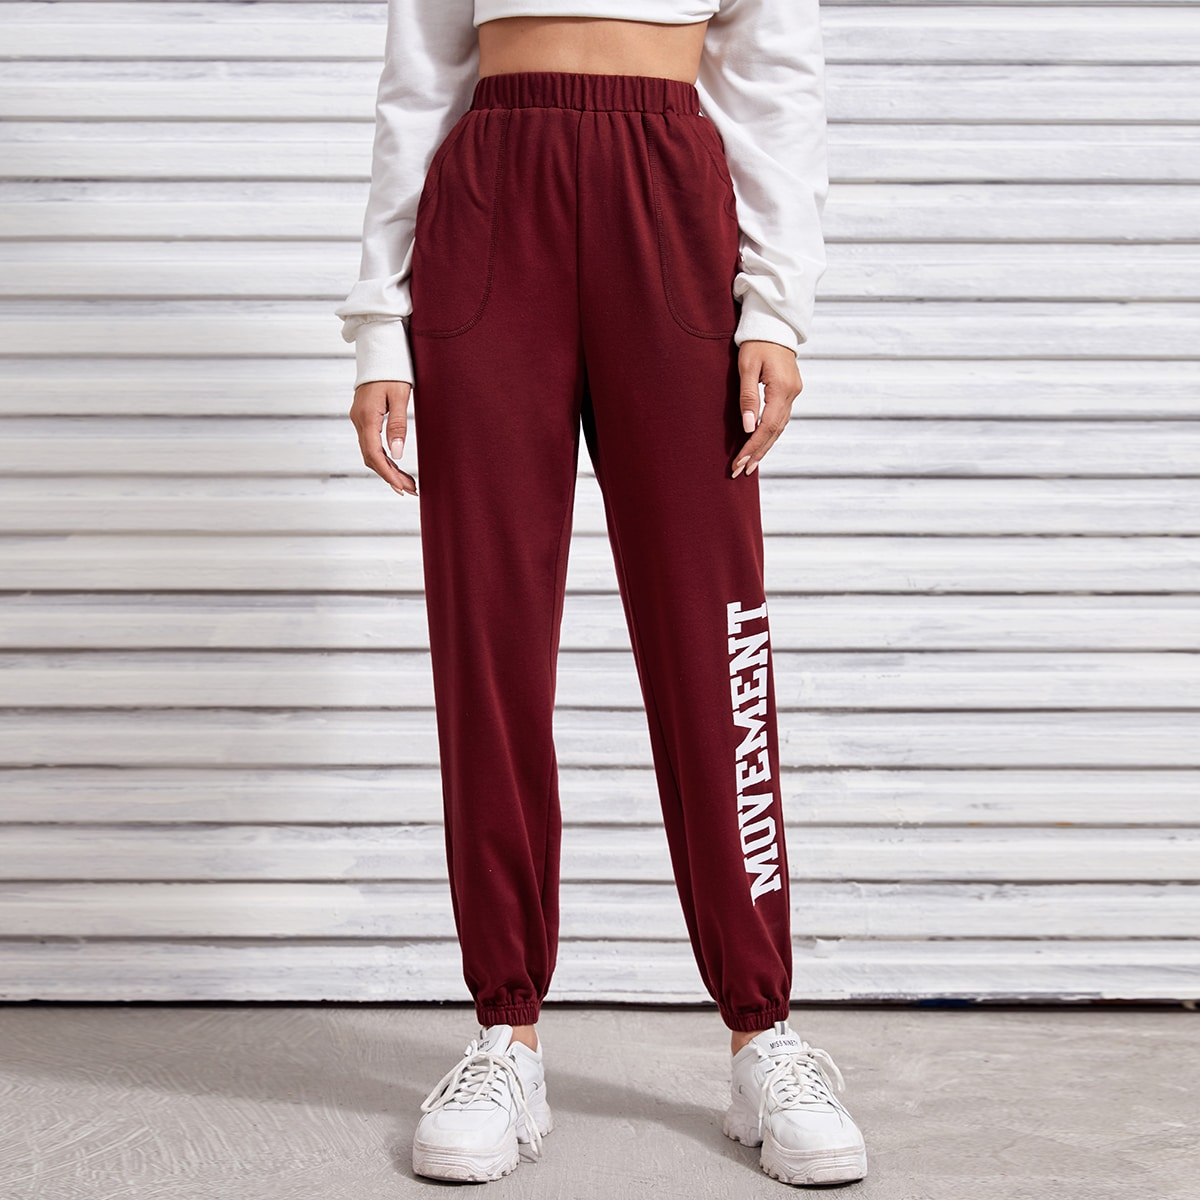 Letter Graphic High Waist Sweatpants